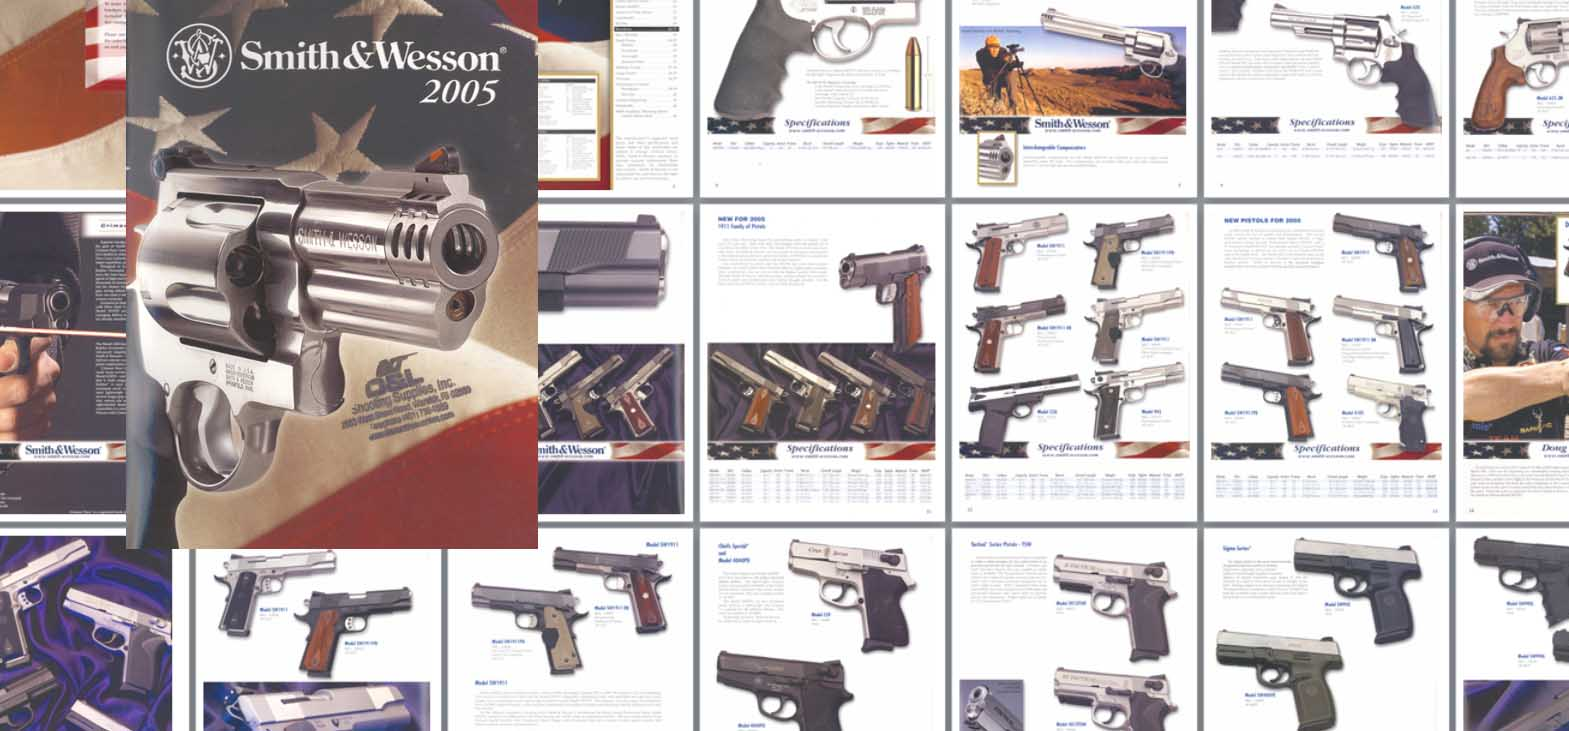 Smith & Wesson 2005 Gun Catalog